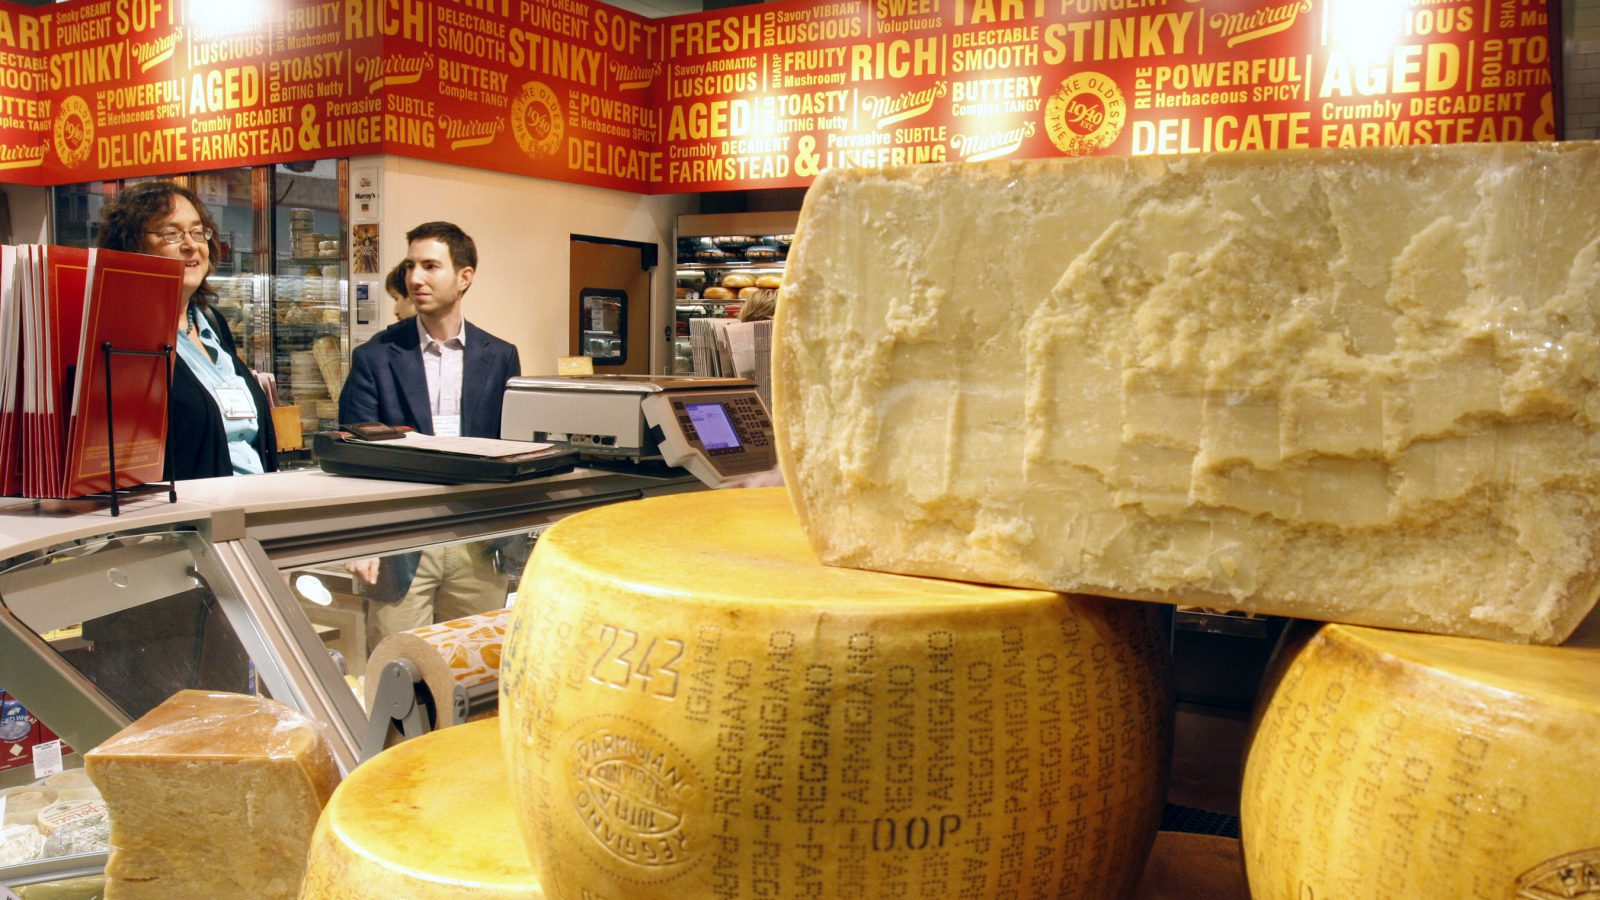 Vendors and members of the media look over Murray's Cheese from New York, a specialty cheese shop inside Kroger's Fresh Fare store, Monday, Nov. 17, 2008, in Cincinnati. The 82,000-square-foot store that opened in the suburban Kenwood area Tuesday is the first of its kind in Kroger's home region.